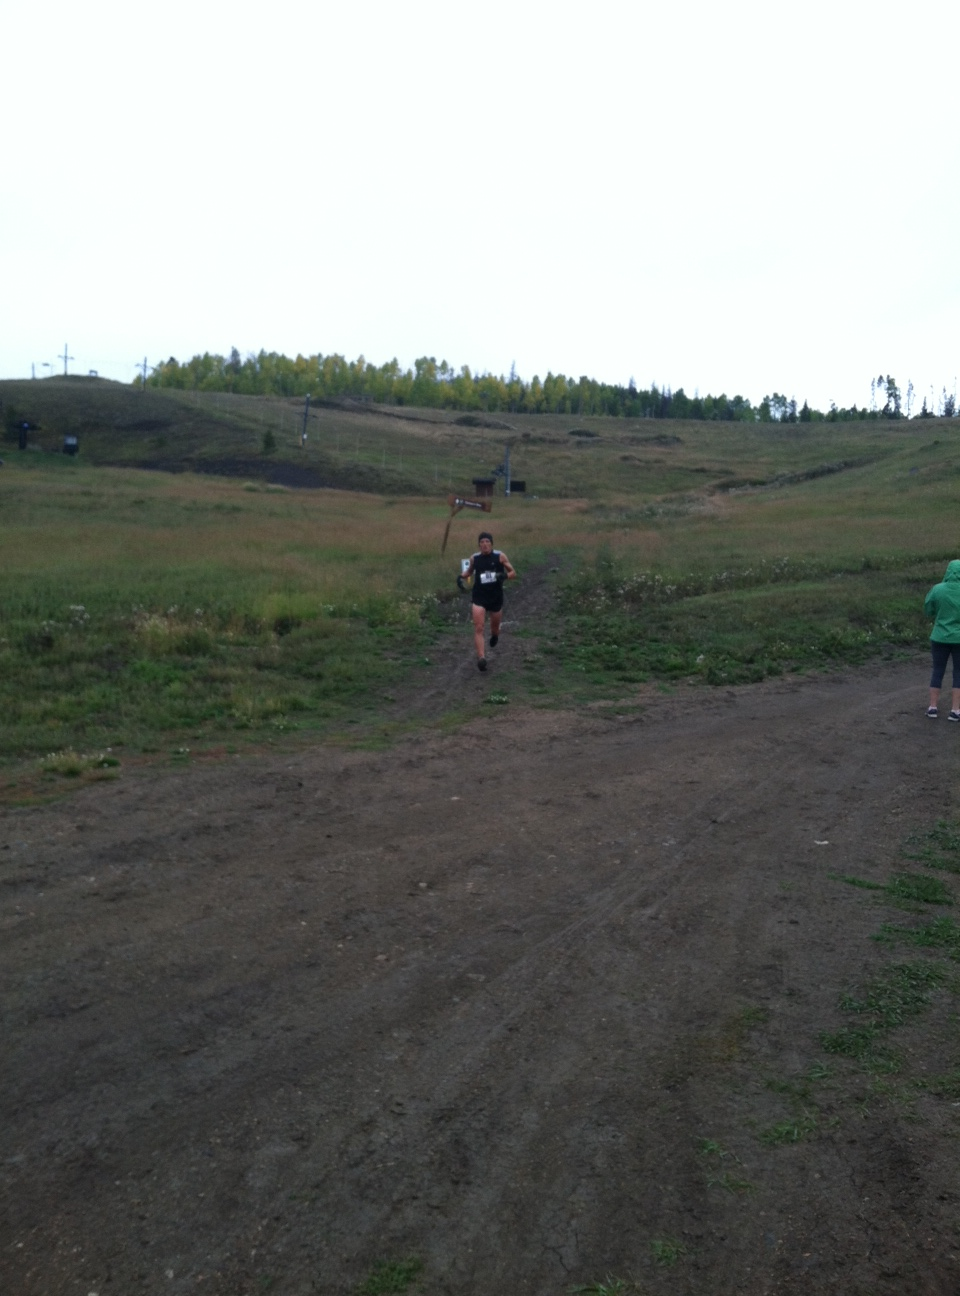 Jonathan Fenske runs the Run the Ranches trail race